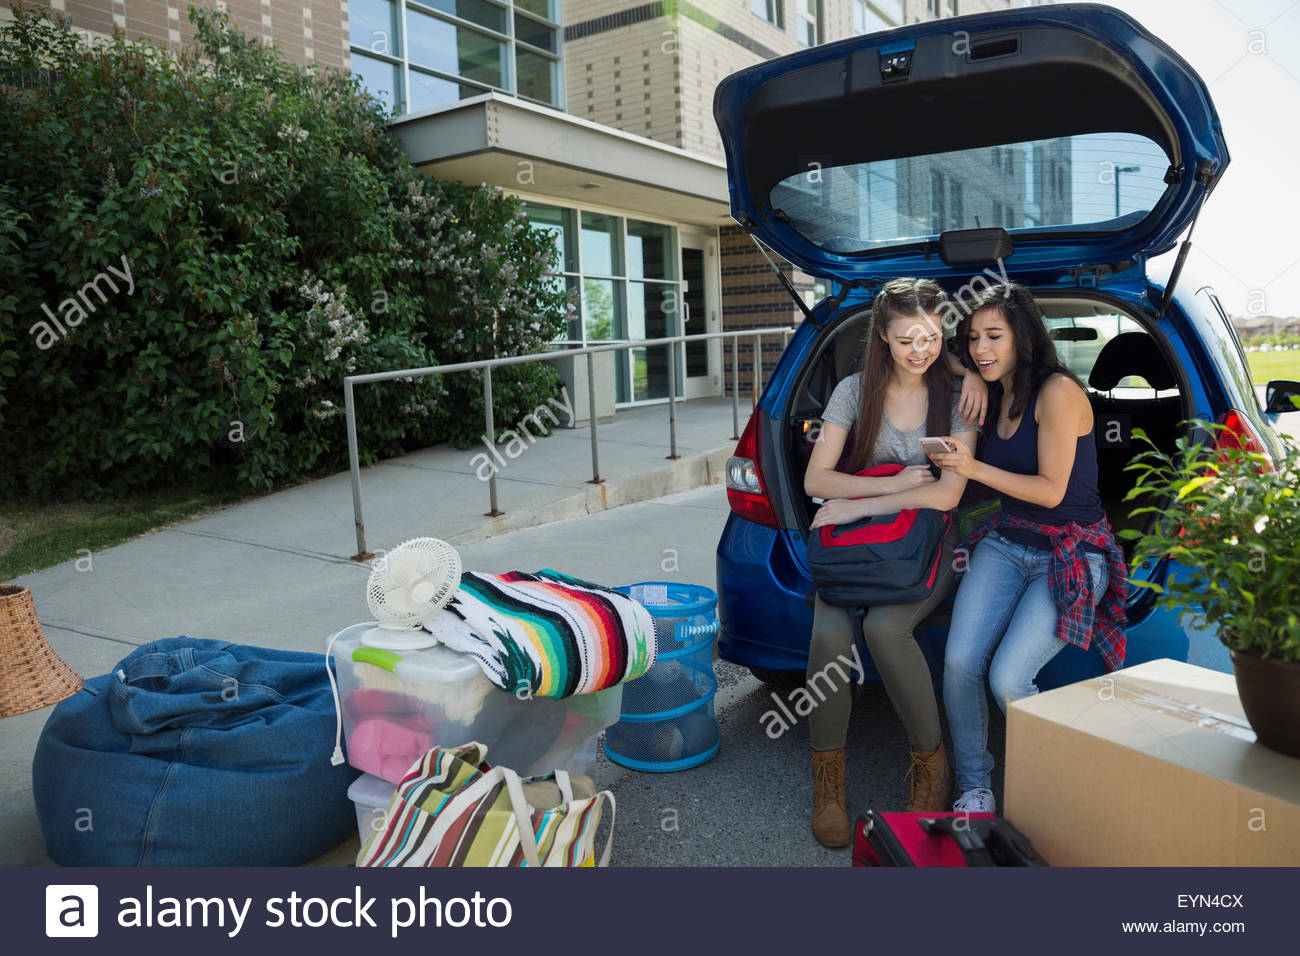 College students texting moving into college dorm - Stock Image